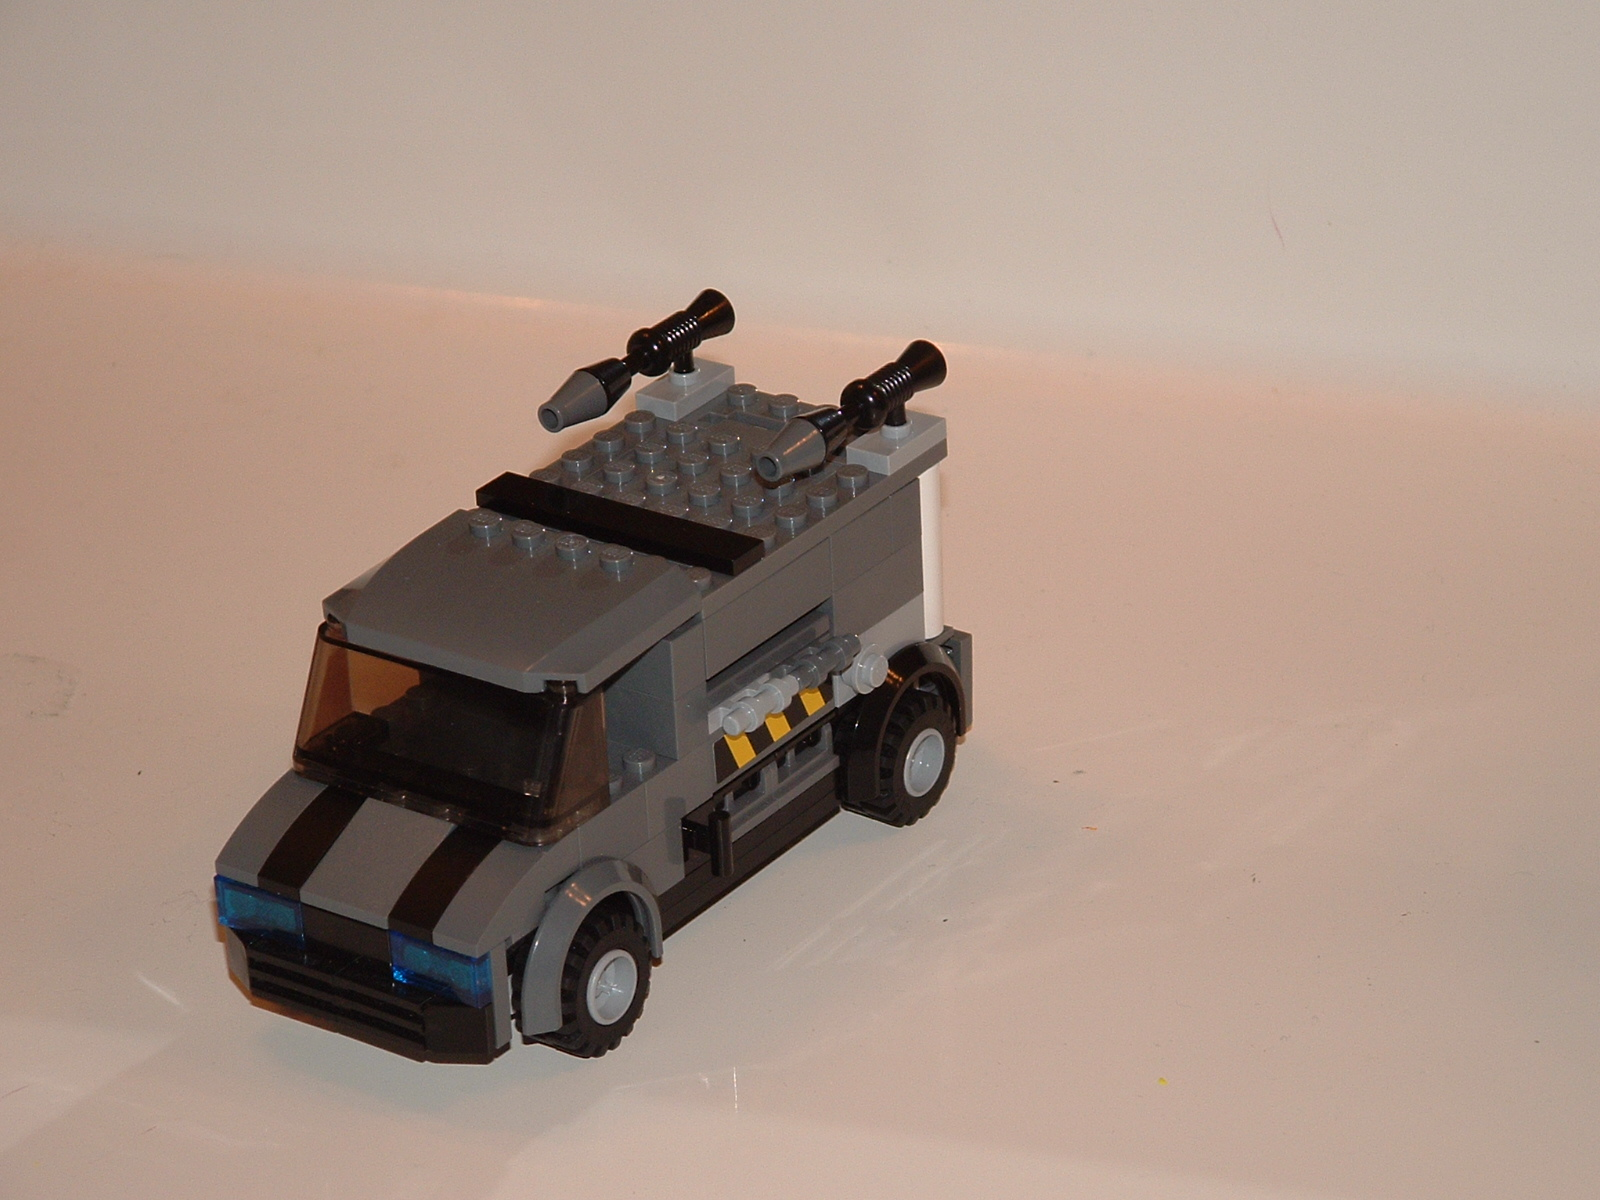 battlevan-starfighter_001.jpg